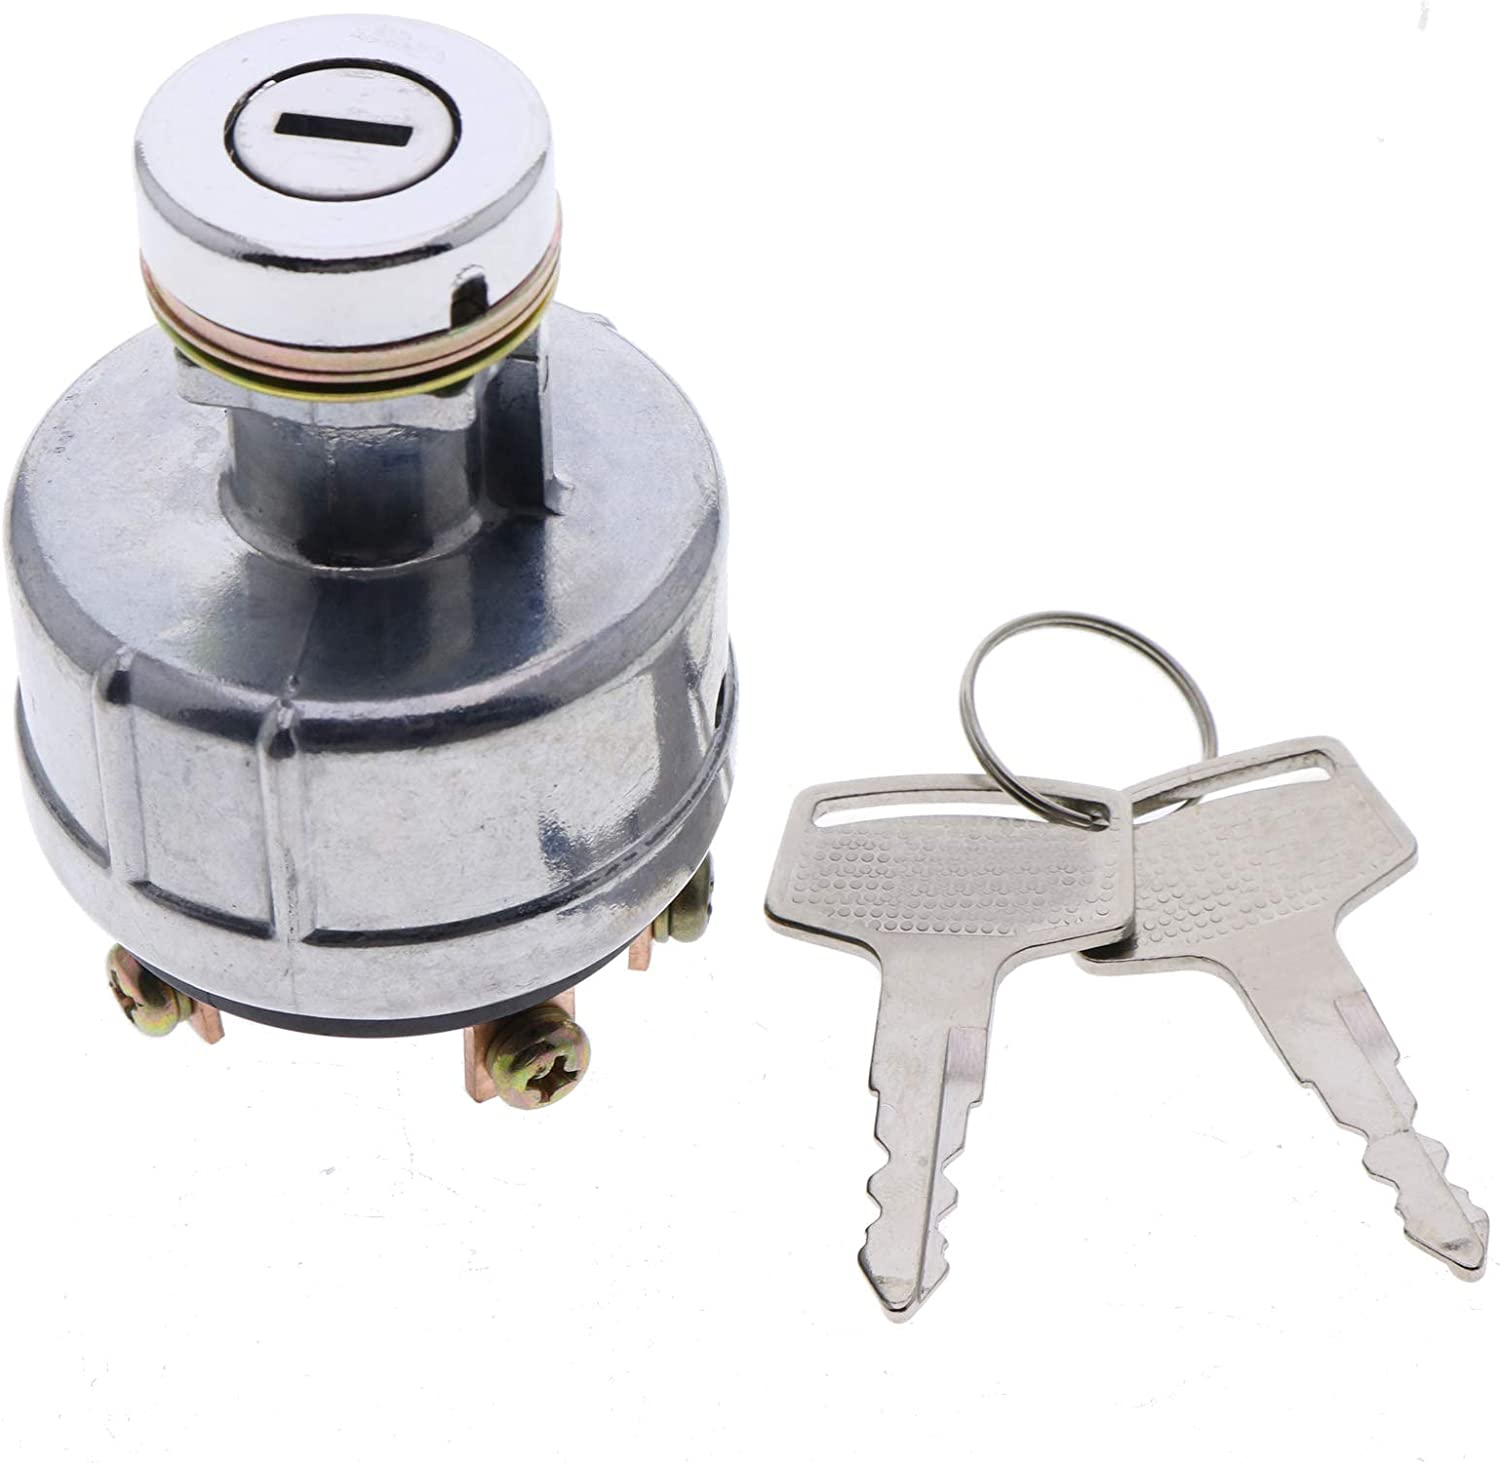 zt truck parts Ignition Switch Fit for Mitsubishi Tractor International Satoh Case IH Tractor 235 245 255 1120 1130 1140 234 244 254 MT20D MT21 MT21D MT22 S373D Beaver S470 S630D S750 ST1820 ST1840